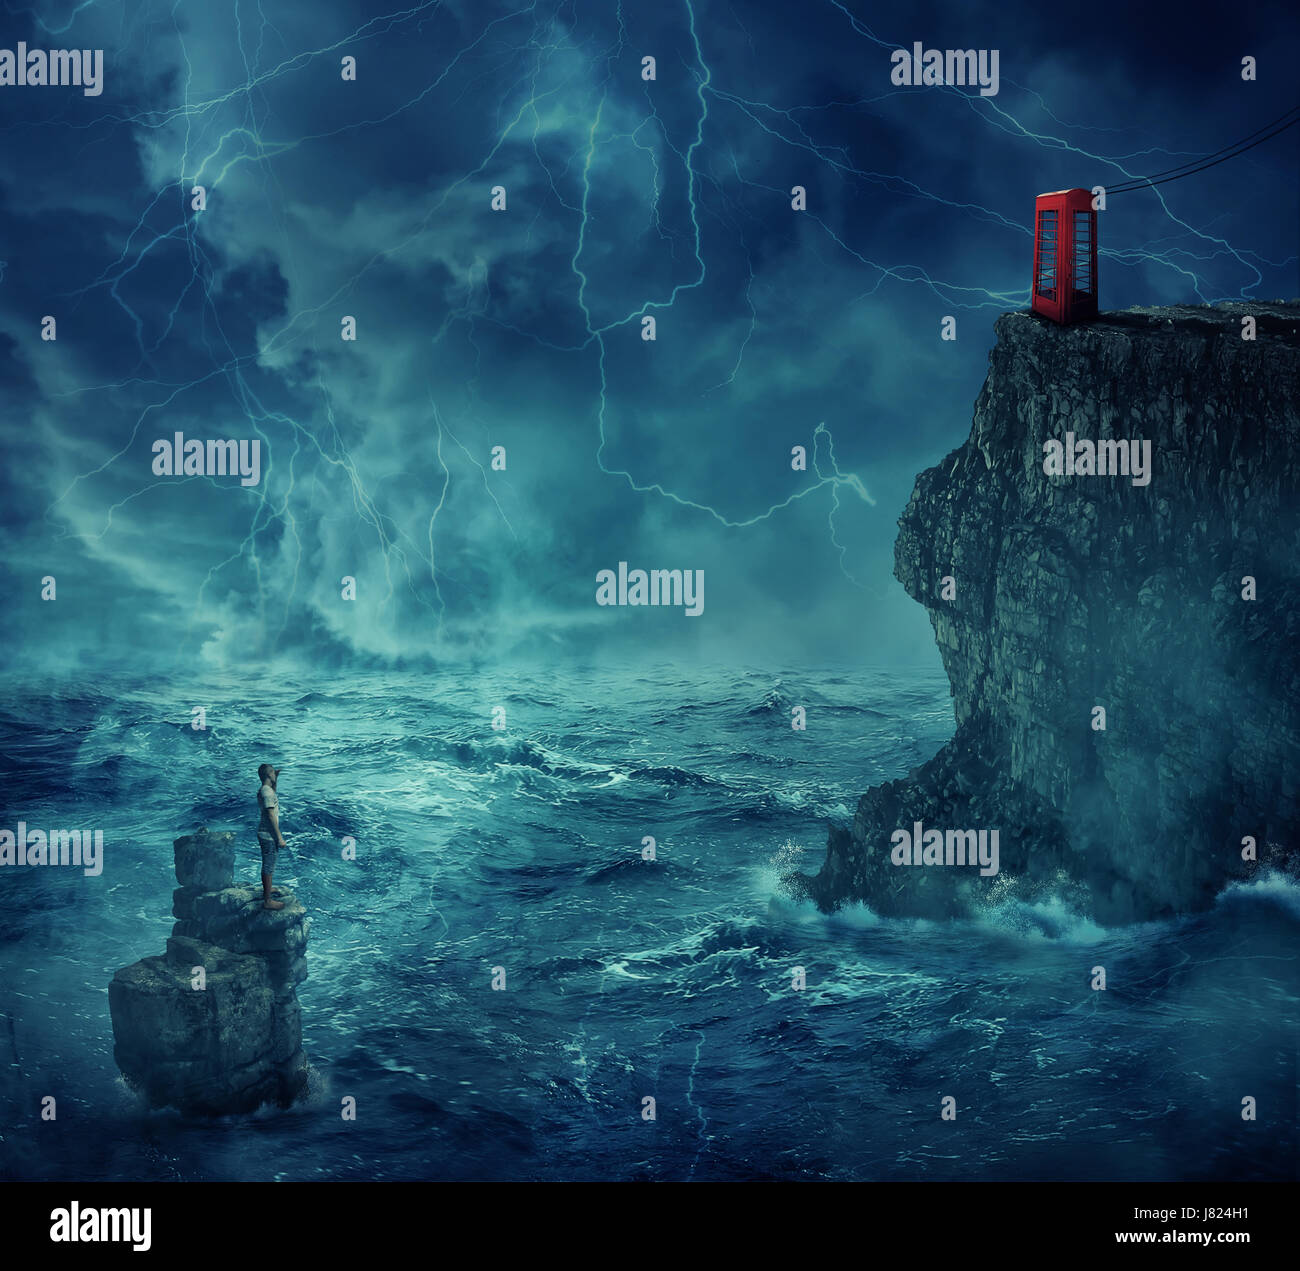 Lost man abandoned in the ocean standing on a rock island, in a stormy night with lightnings in the sky. Looking - Stock Image